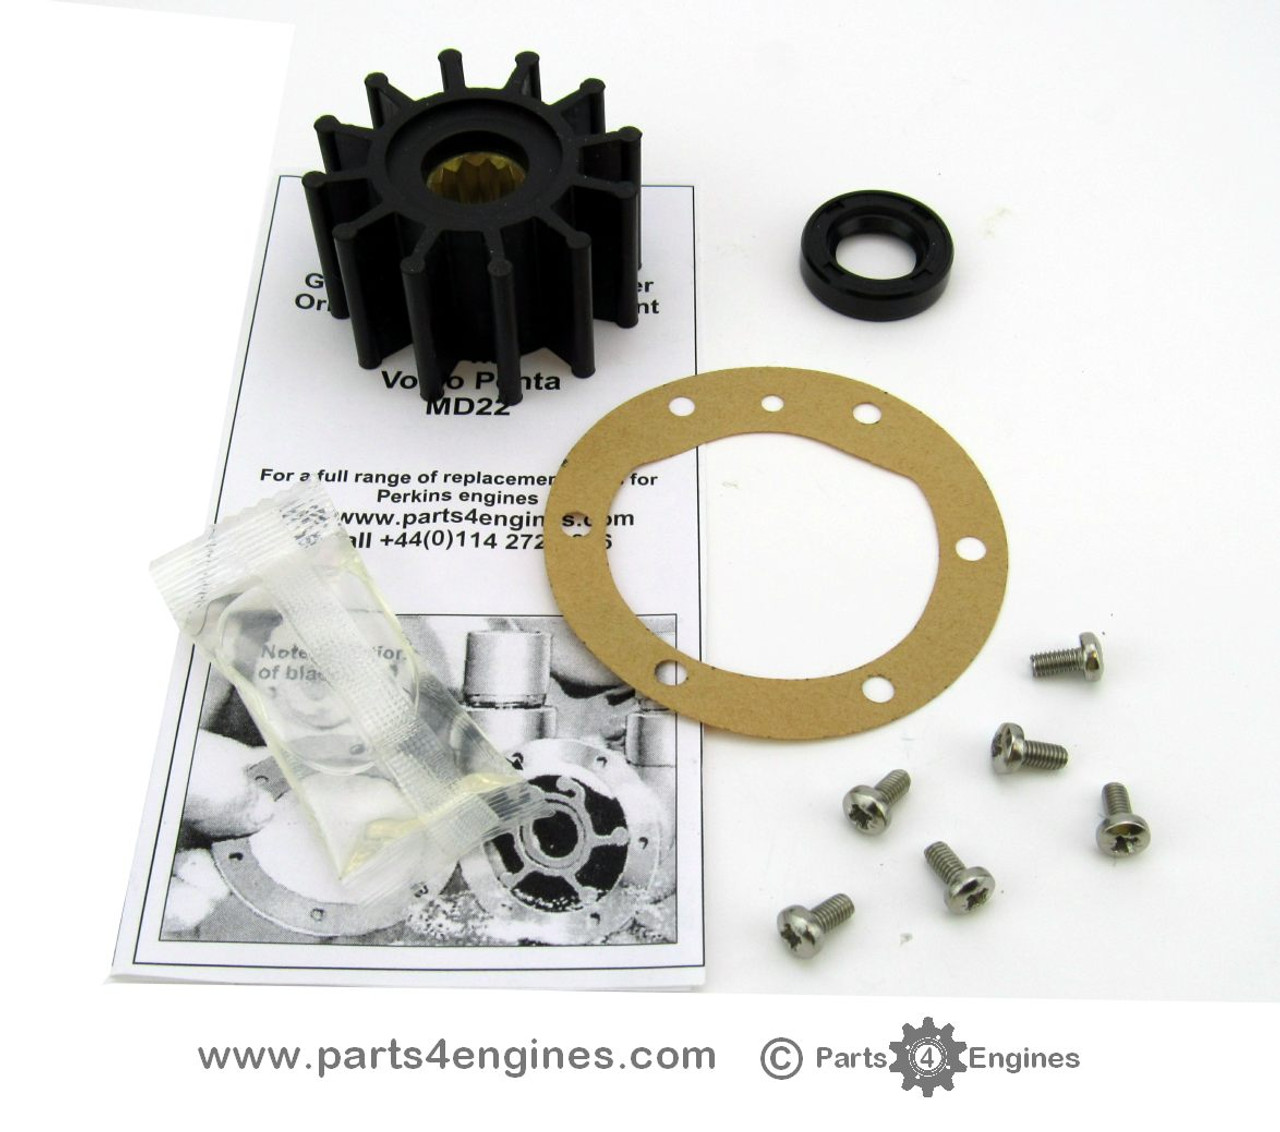 Volvo Penta MD22 Belt driven raw water pump service kit - parts4engines.com